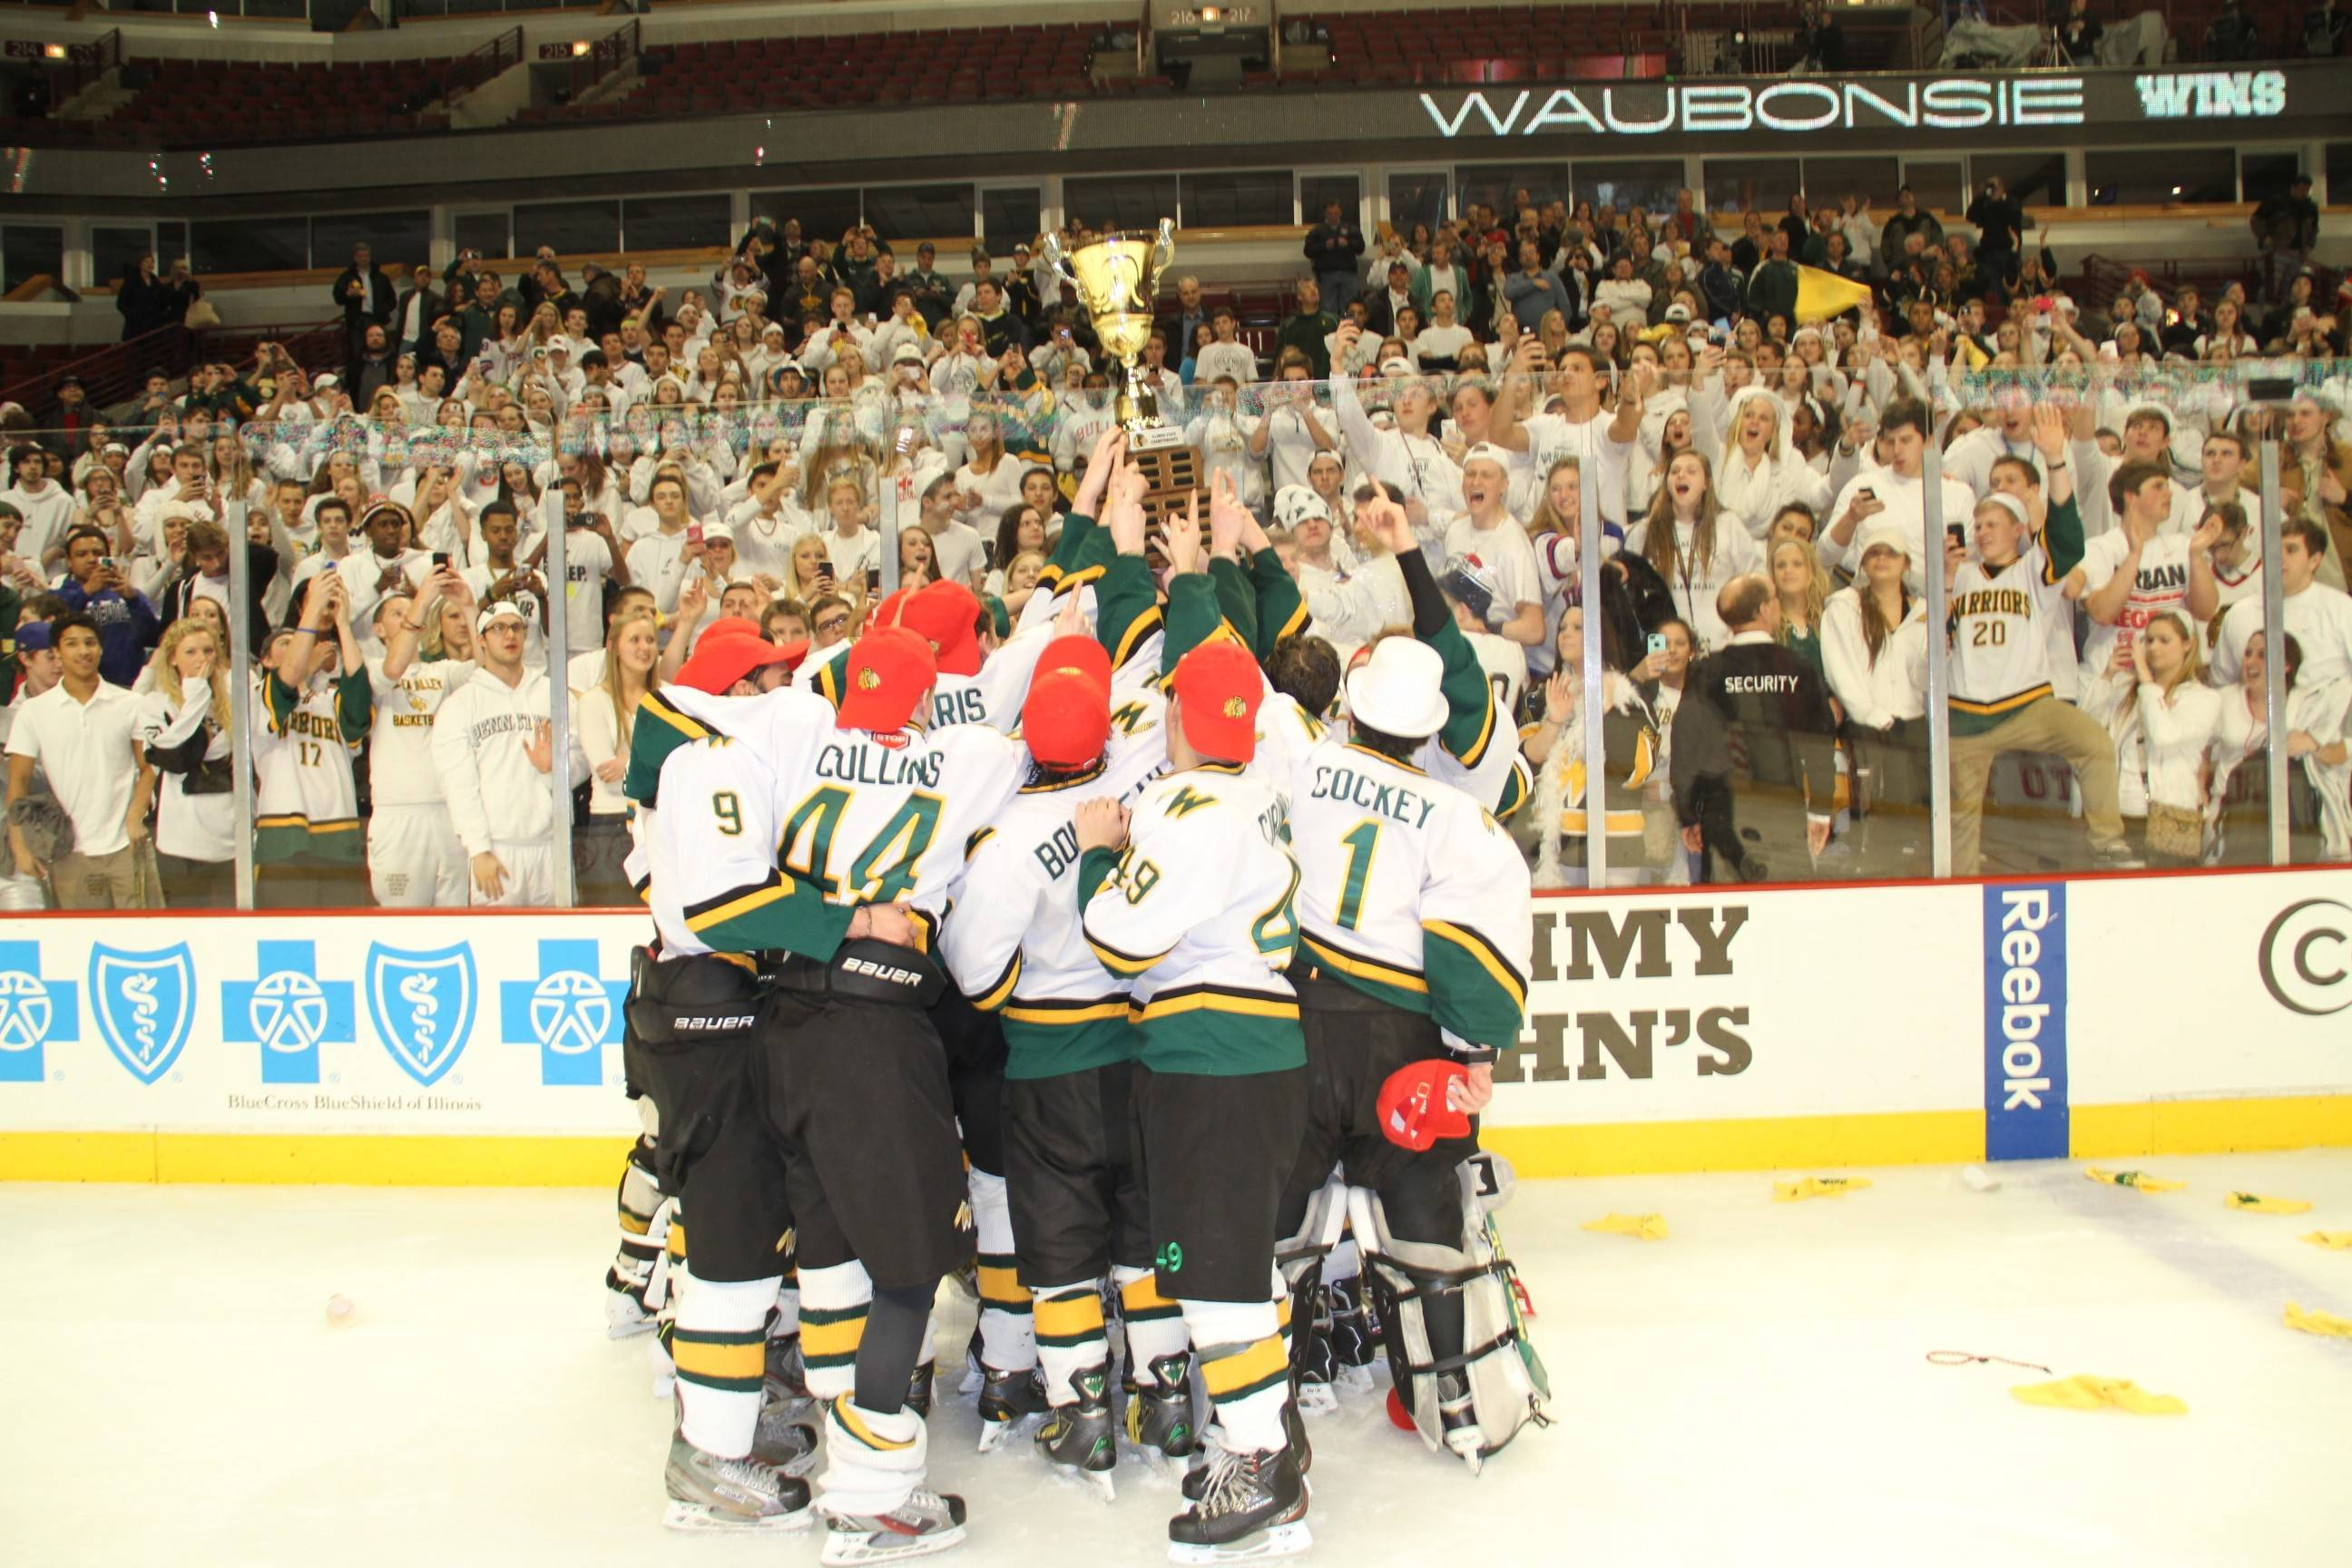 Waubonsie hockey players display the Combined Division state championship trophy after a 3-0 victory over Glenbard on Thursday at the United Center.